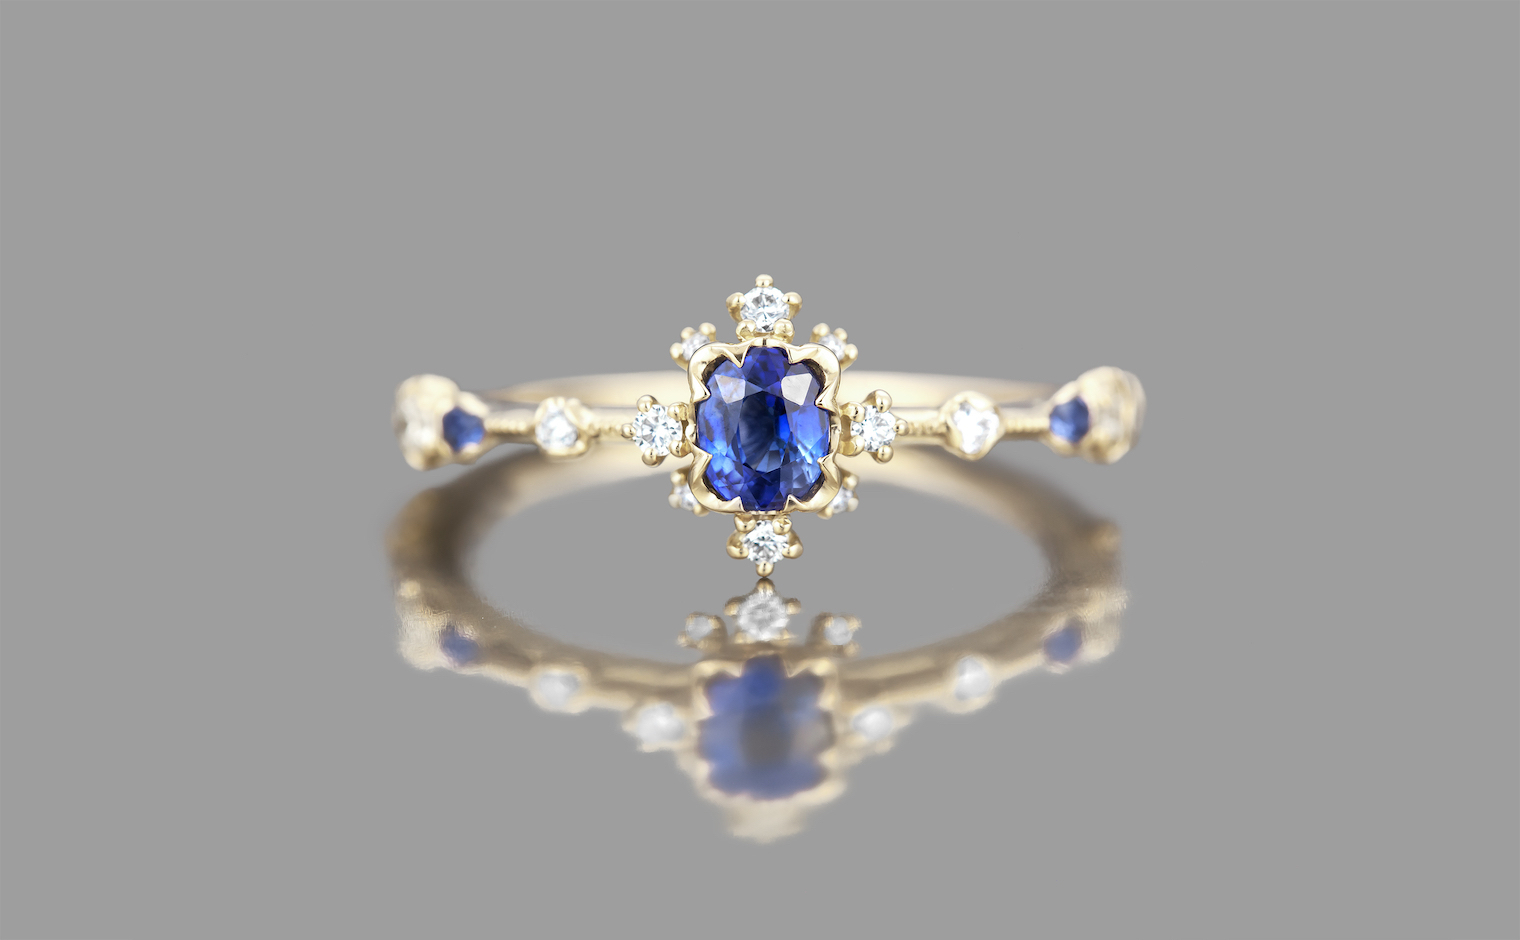 Sapphire Snowflake Ring Intended For Latest Blue Sparkling Crown Rings (Gallery 5 of 25)